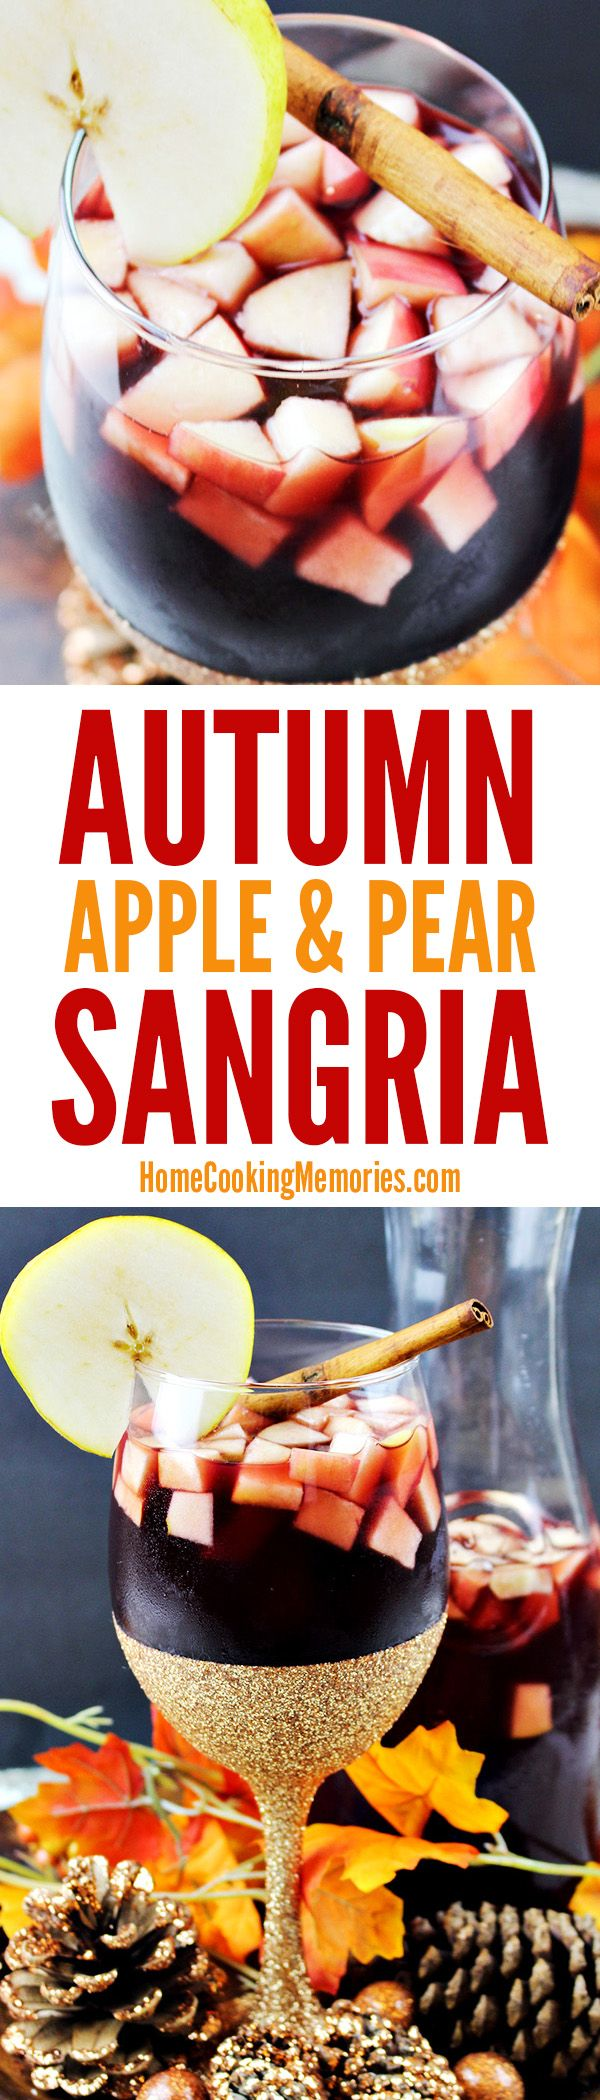 Delicious fall cocktail recipe: Autumn Apple & Pear Sangria! Made with a blend of red wine, apple cider, brandy - it's perfect for Thanskgiving dinner or fall parties.